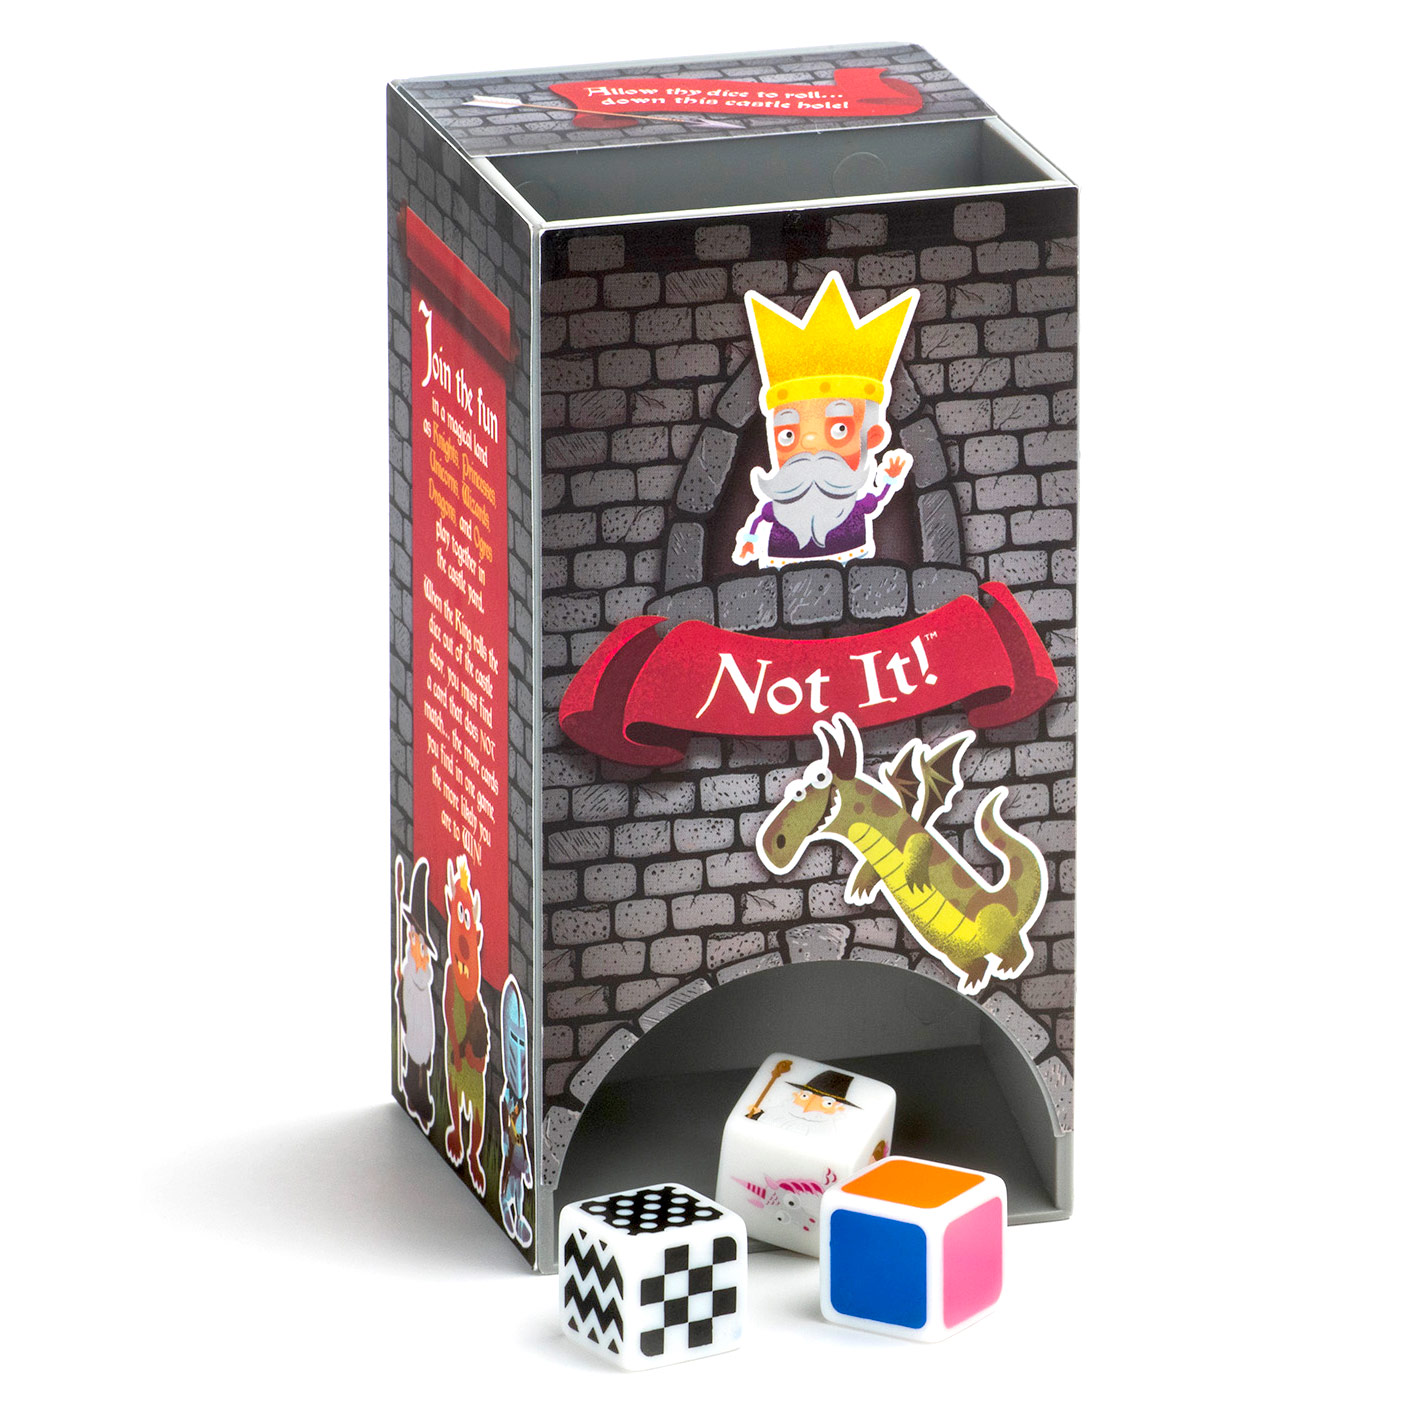 The Good Game Company Not It! the Castle Land edition